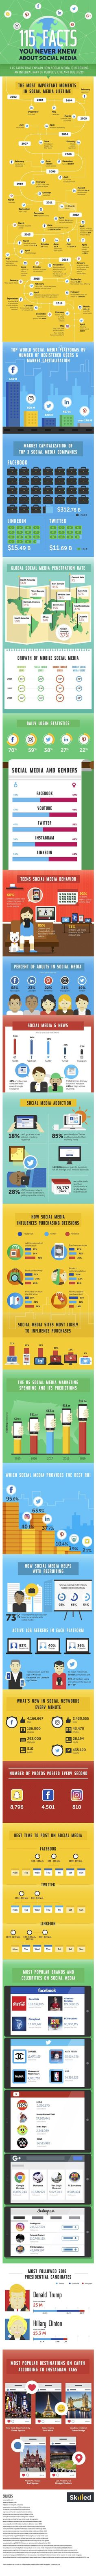 115 Social Media Facts You Need To Know. Important for small businesses doing social media marketing. History of social media, how it influences purchasing, ad spending and much more. #SocialMedia